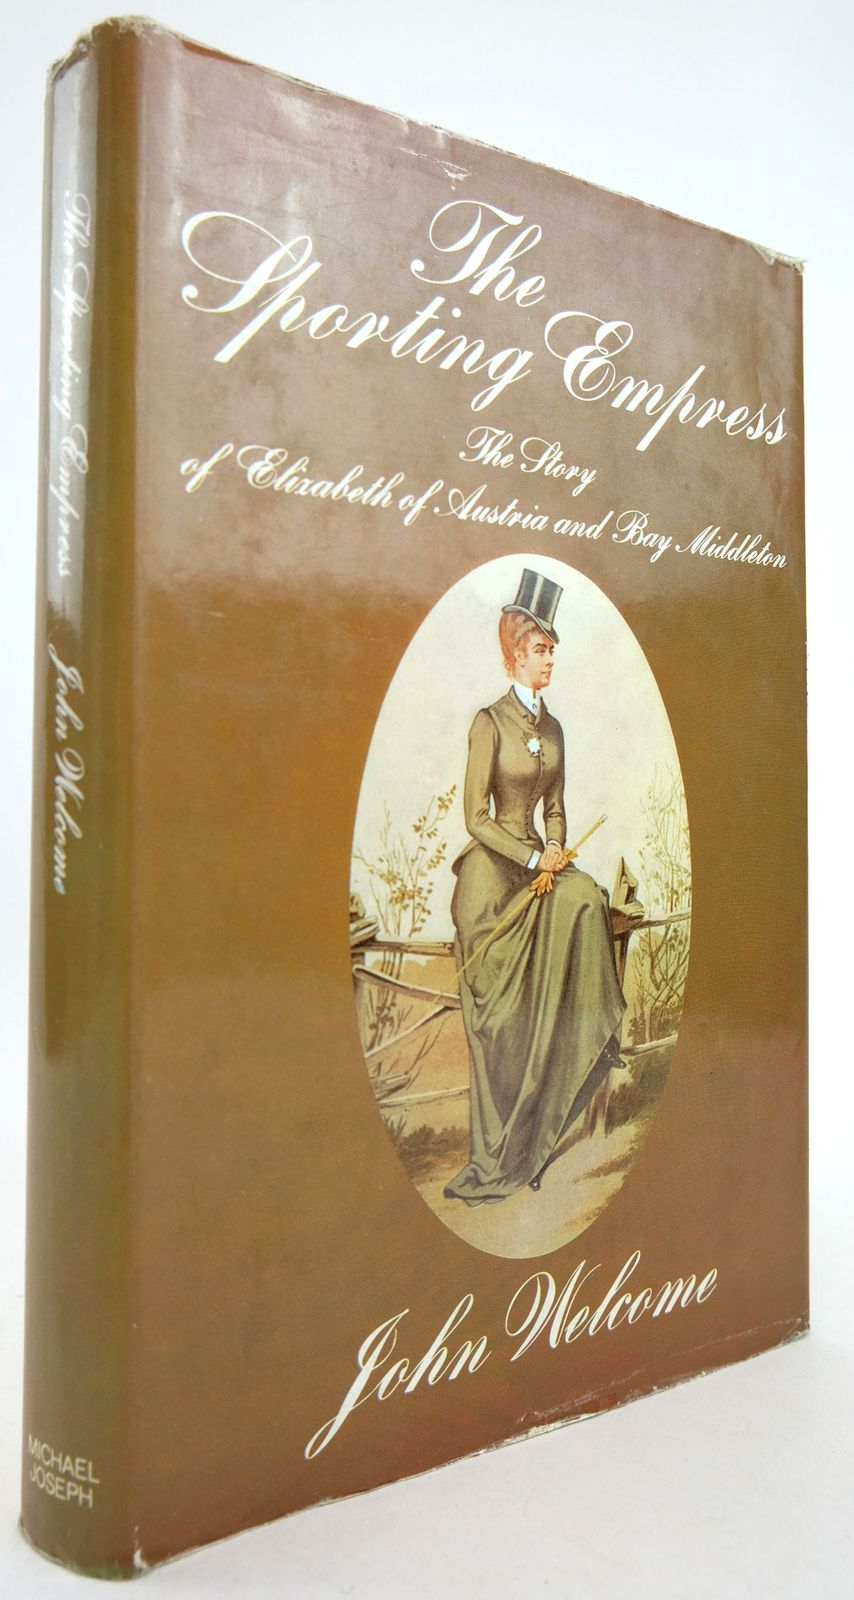 Photo of THE SPORTING EMPRESS: THE STORY OF ELIZABETH OF AUSTRIA AND BAY MIDDLETON written by Welcome, John published by Michael Joseph (STOCK CODE: 1819224)  for sale by Stella & Rose's Books